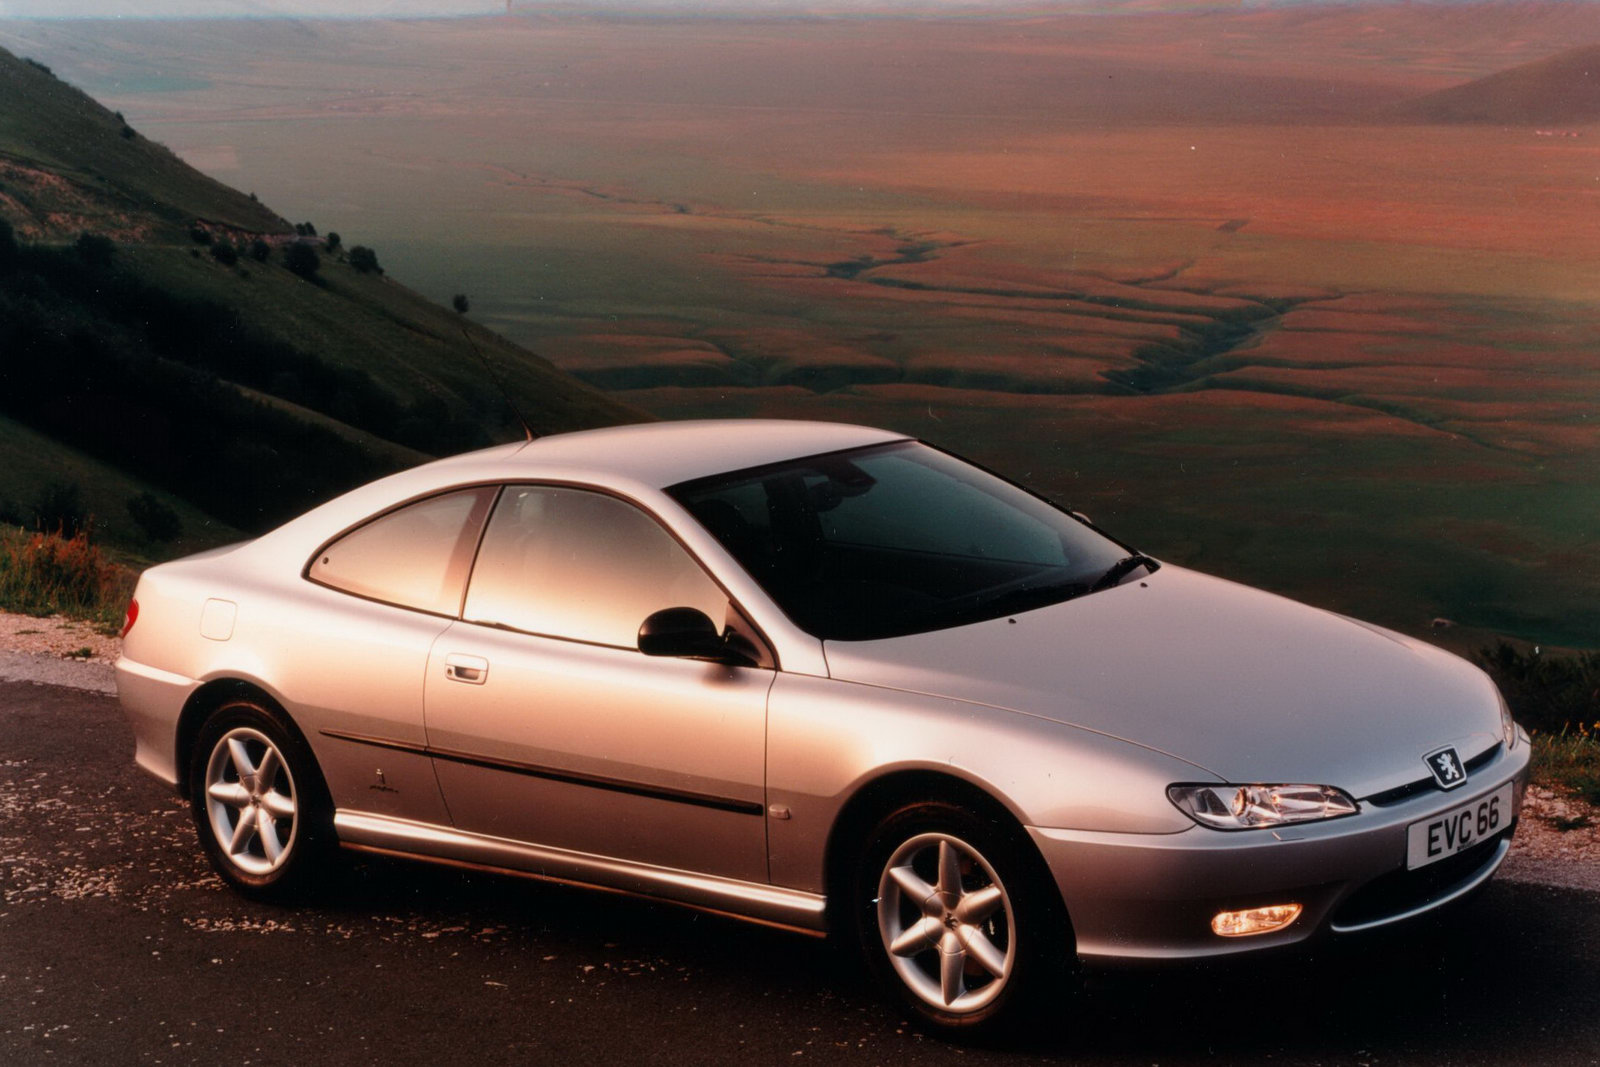 lion of beauty 1997 peugeot 406 coup driven to write rh driventowrite com Peugeot 406 Peugeot 406